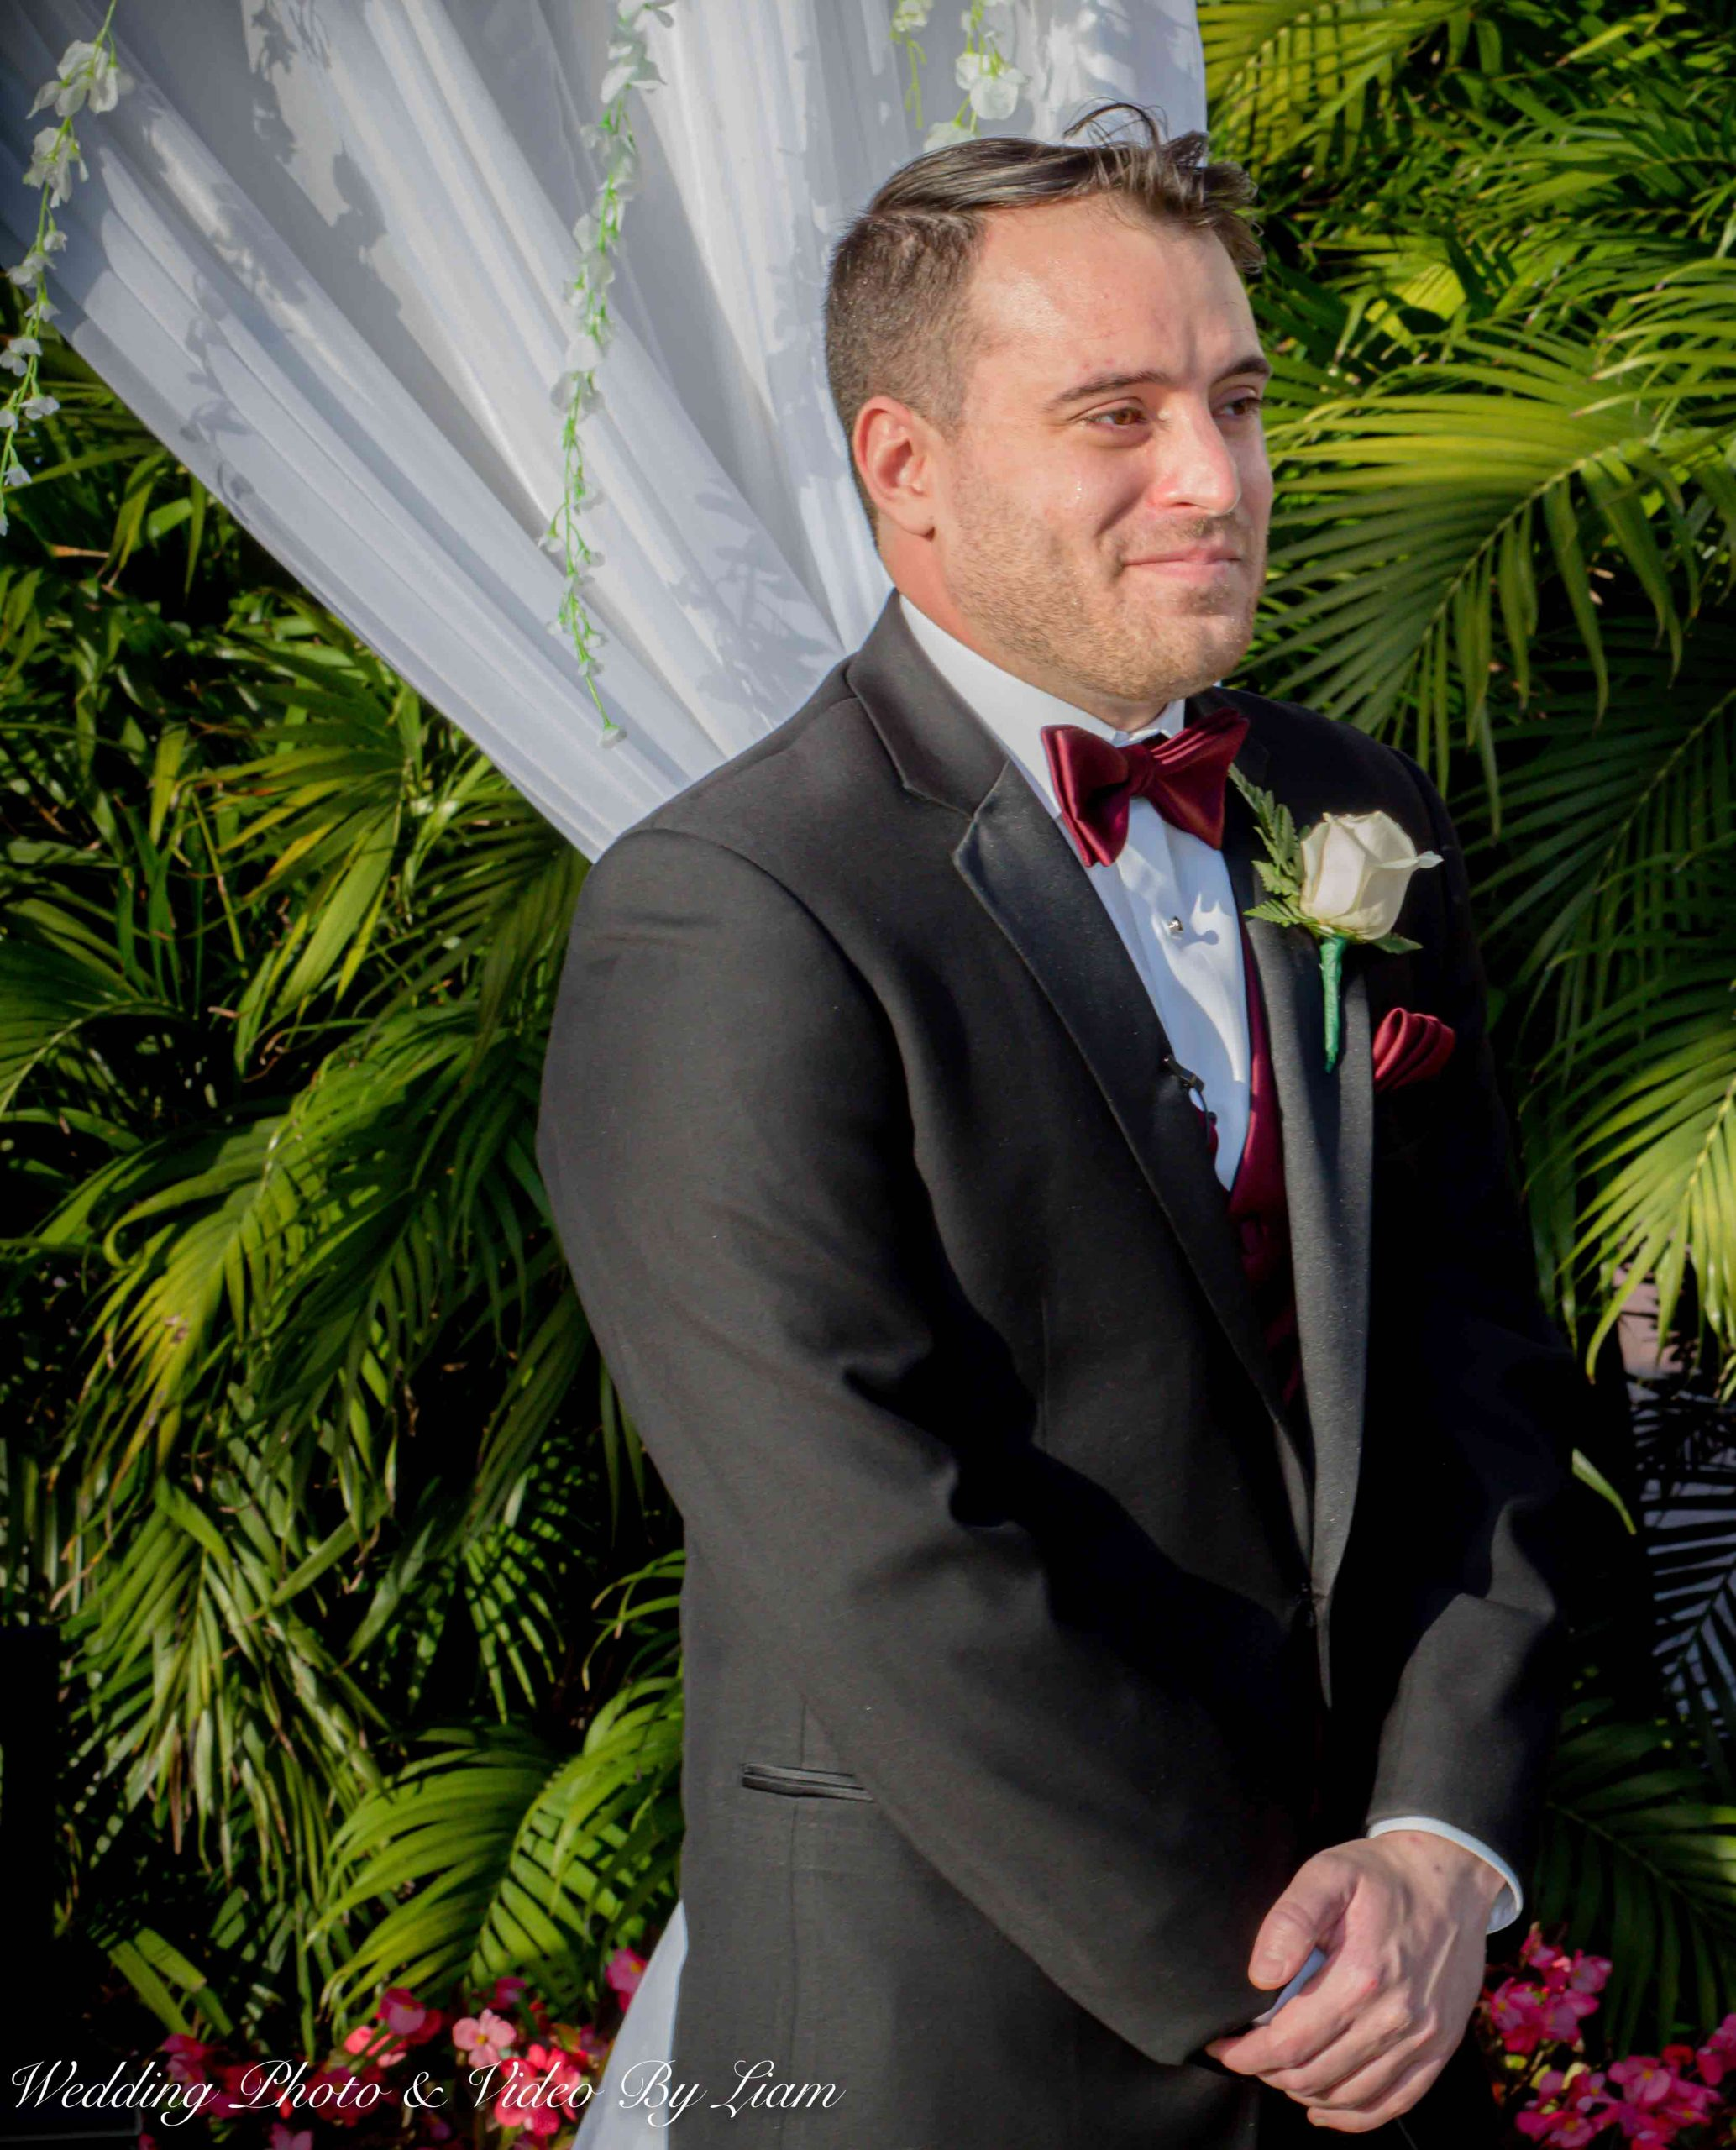 Grooms Reaction to The Bride